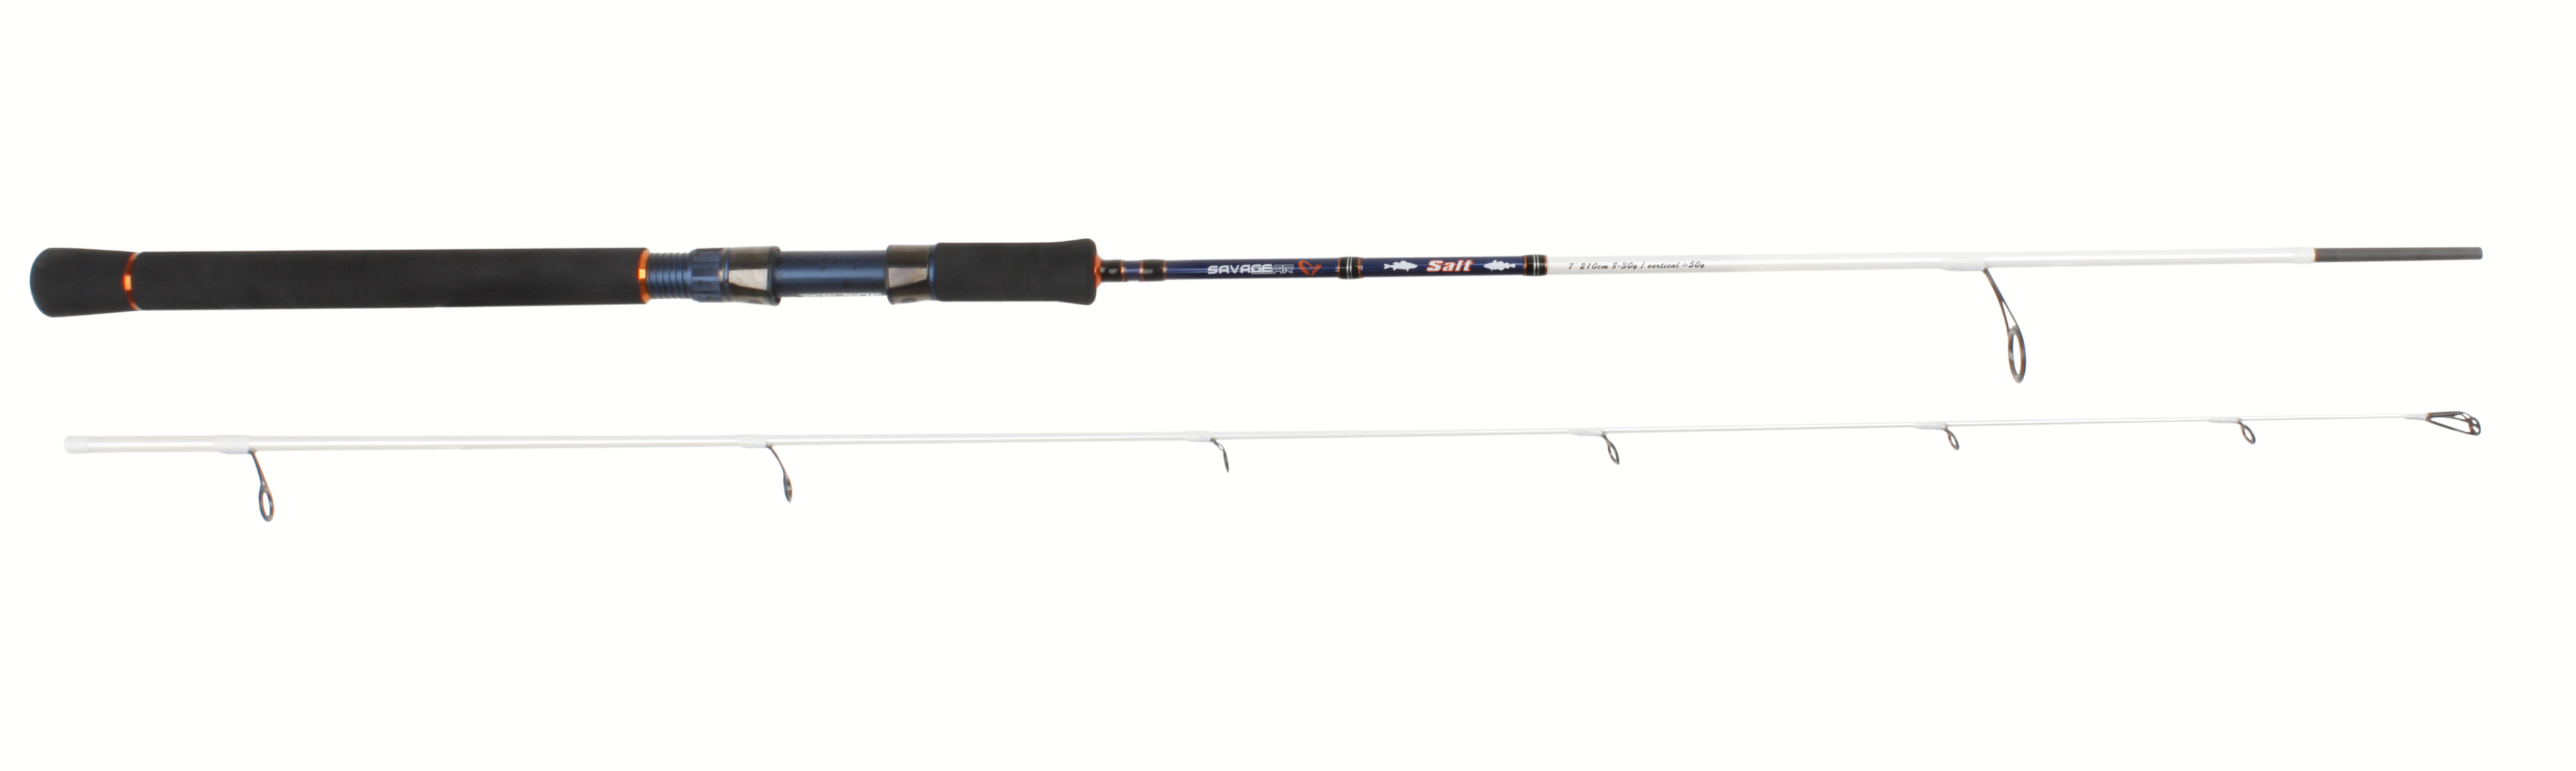 Savage gear saltwater lure bass fishing rods glasgow for Savage fishing gear